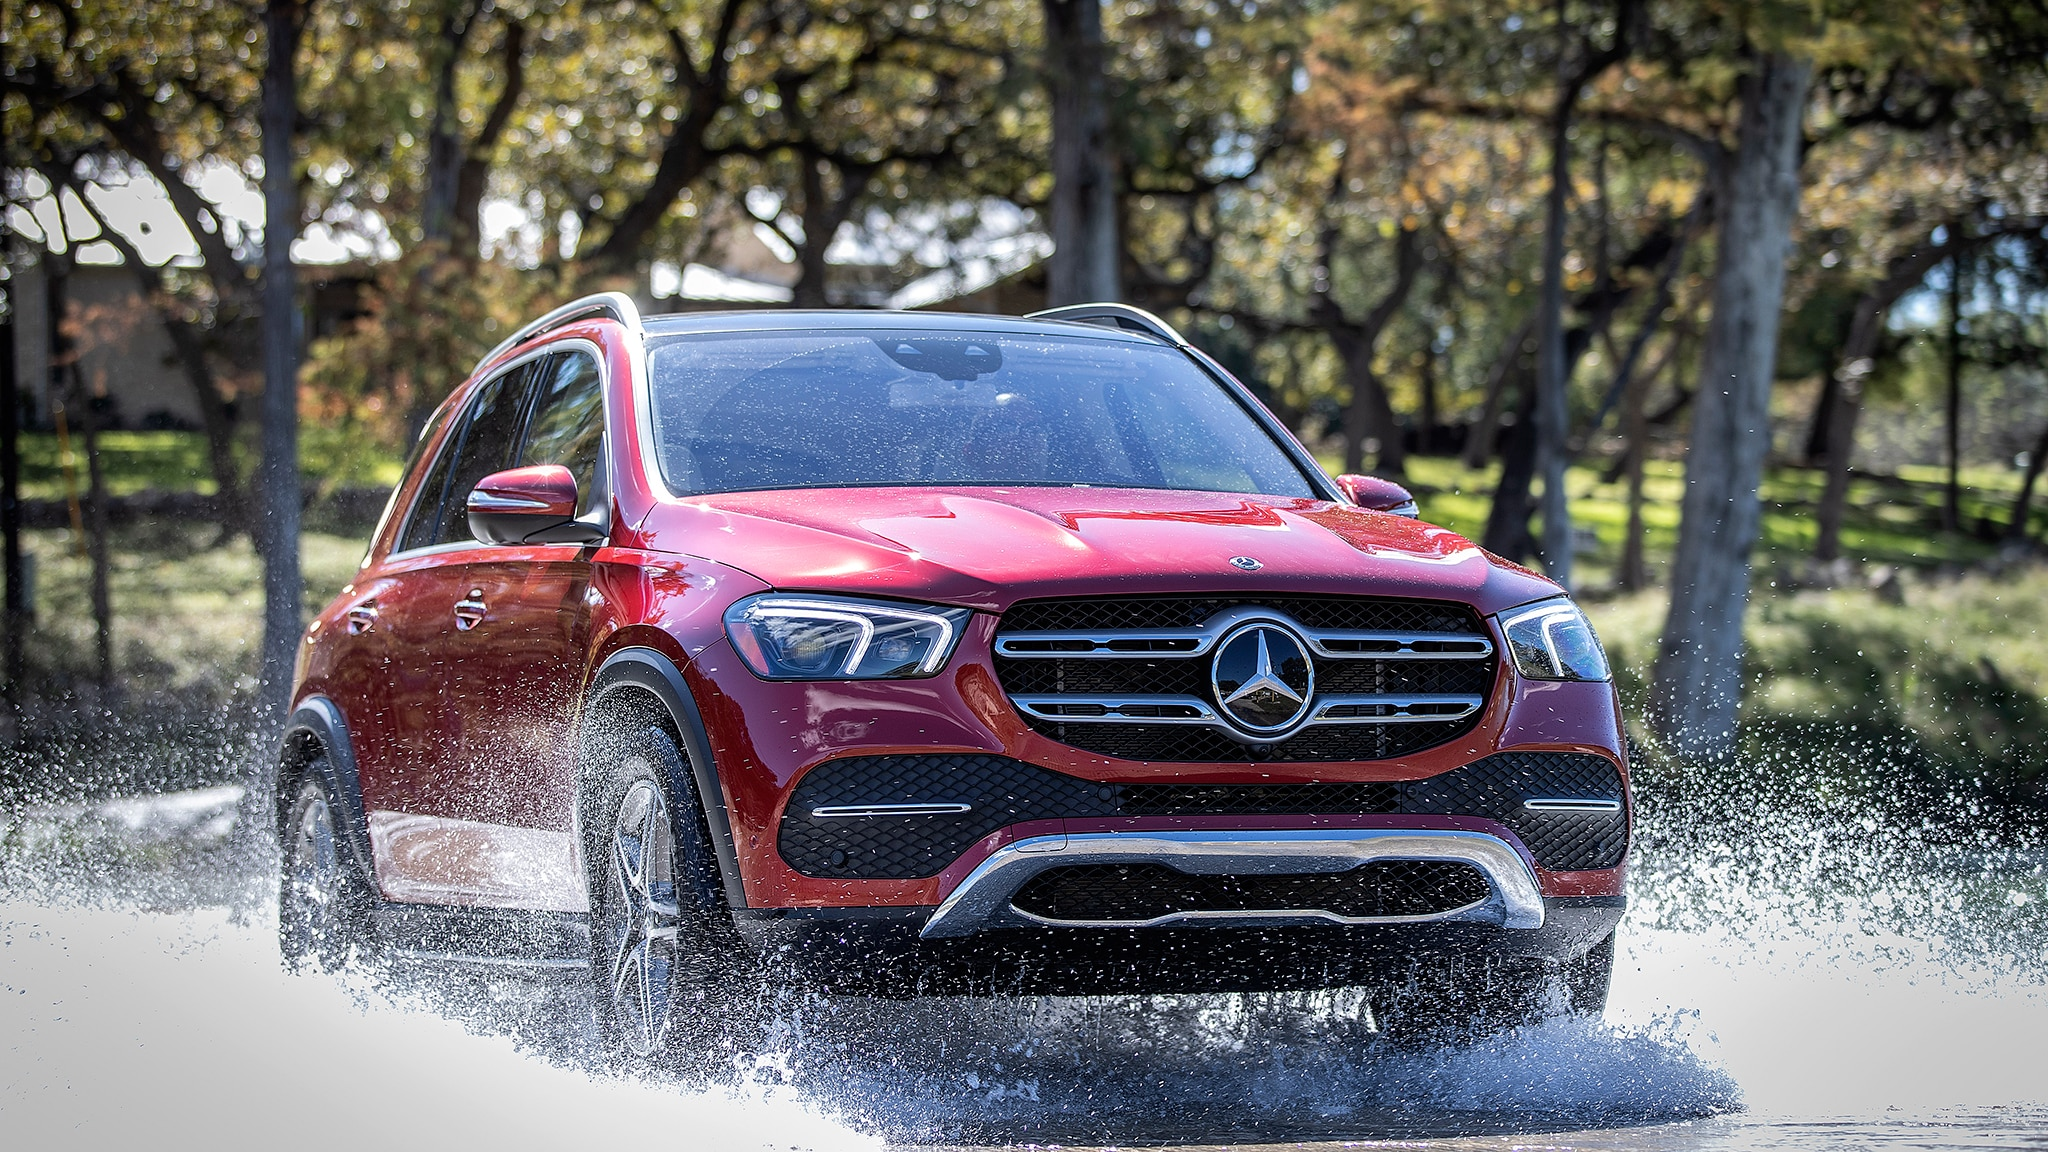 85 New 2020 Mercedes GLE Price Design and Review